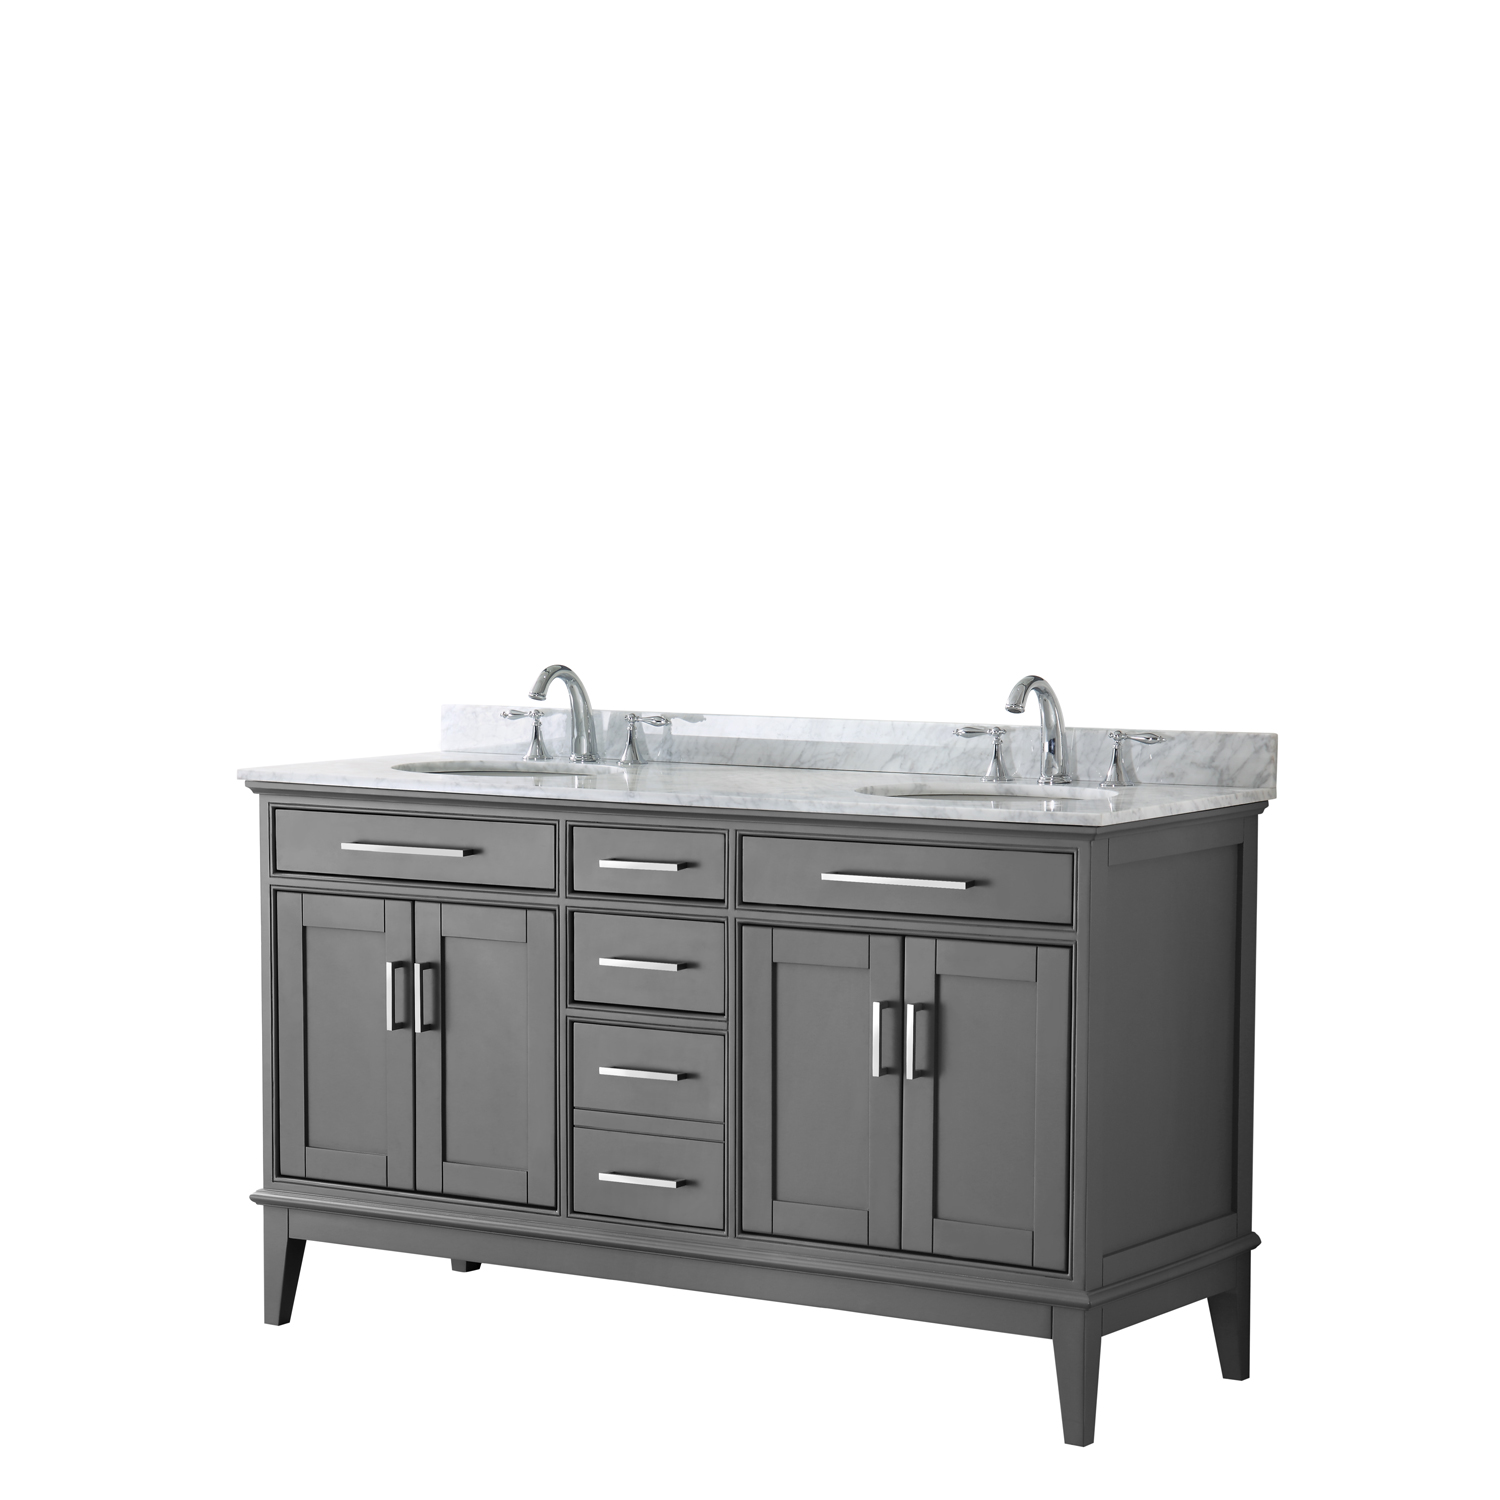 "Contemporary 60"" Double Bathroom Vanity in Dark Gray, White Carrara Marble Countertop with Undermount Sinks, and Mirror Options"